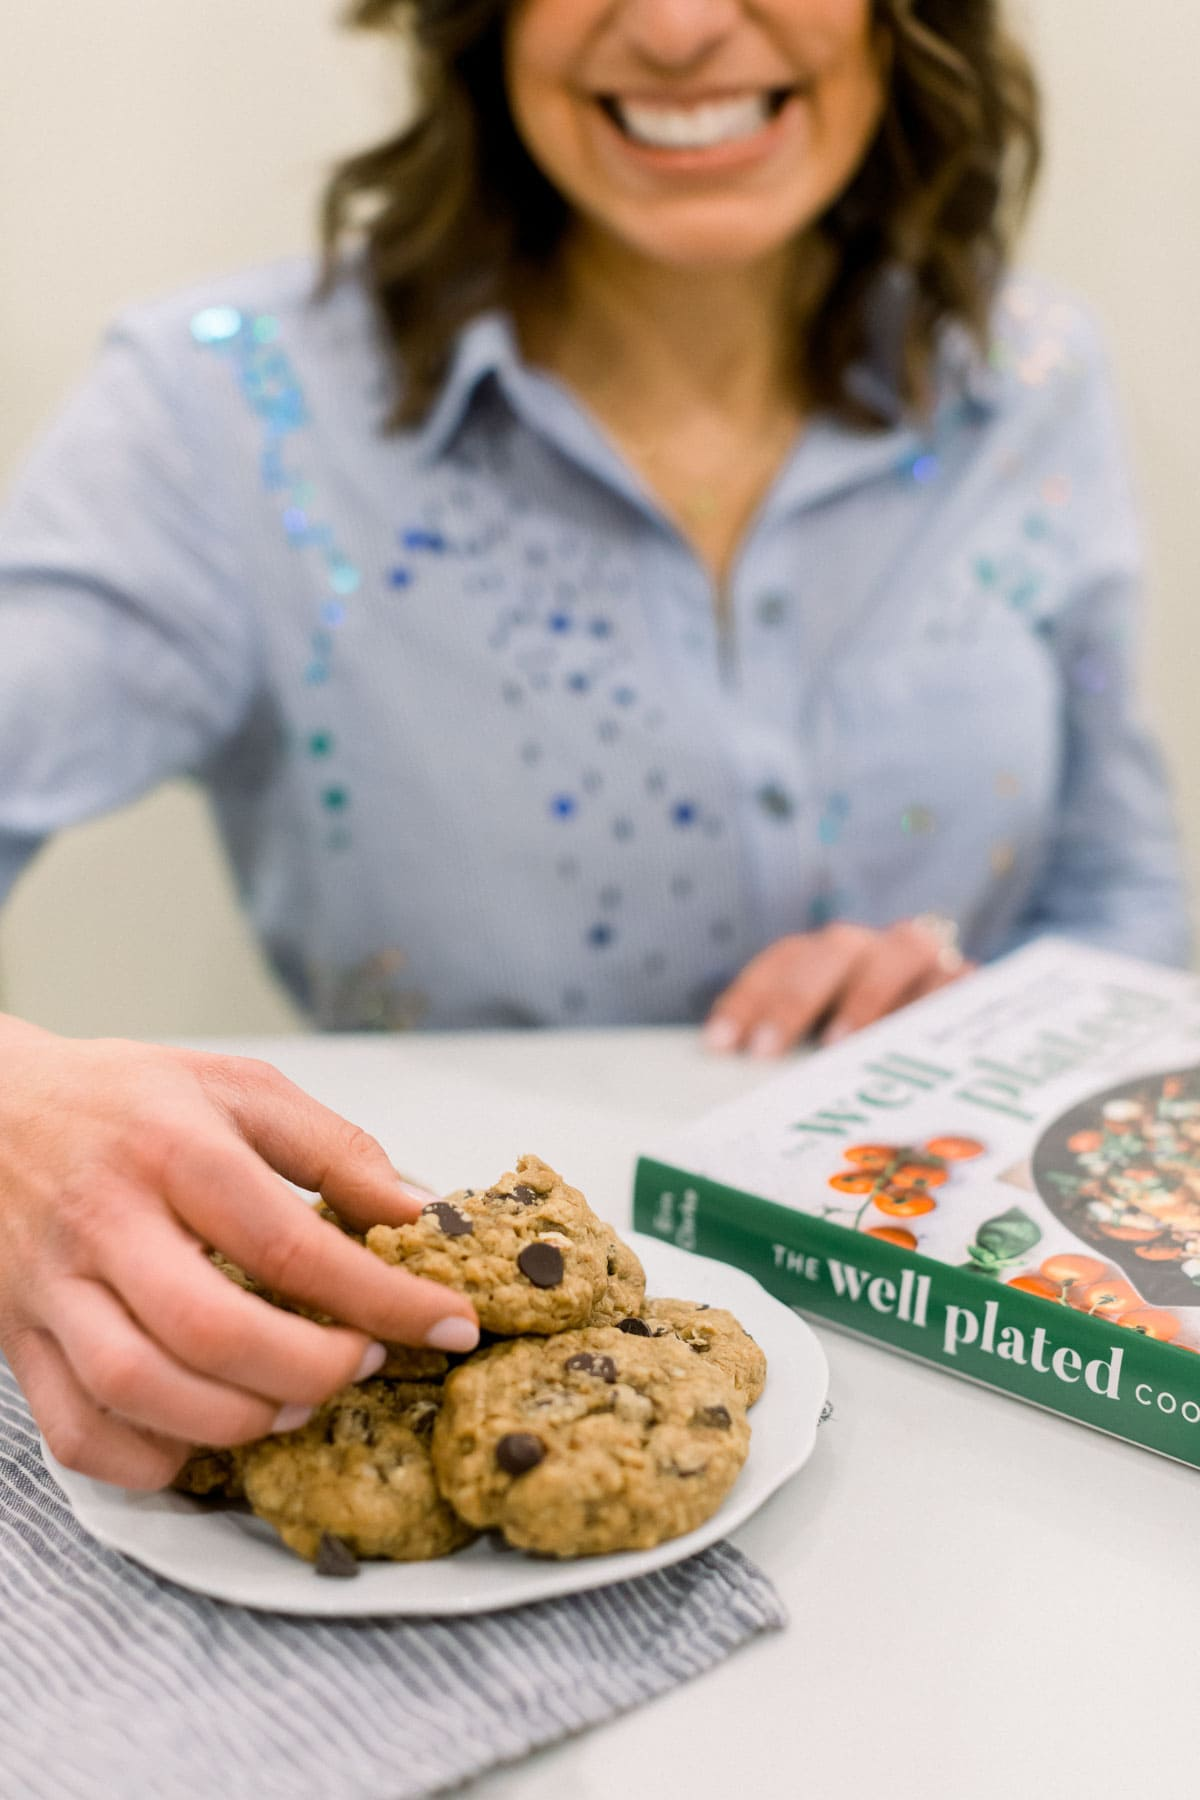 Erin Clarke holding a cookie next to a copy of her cookbook